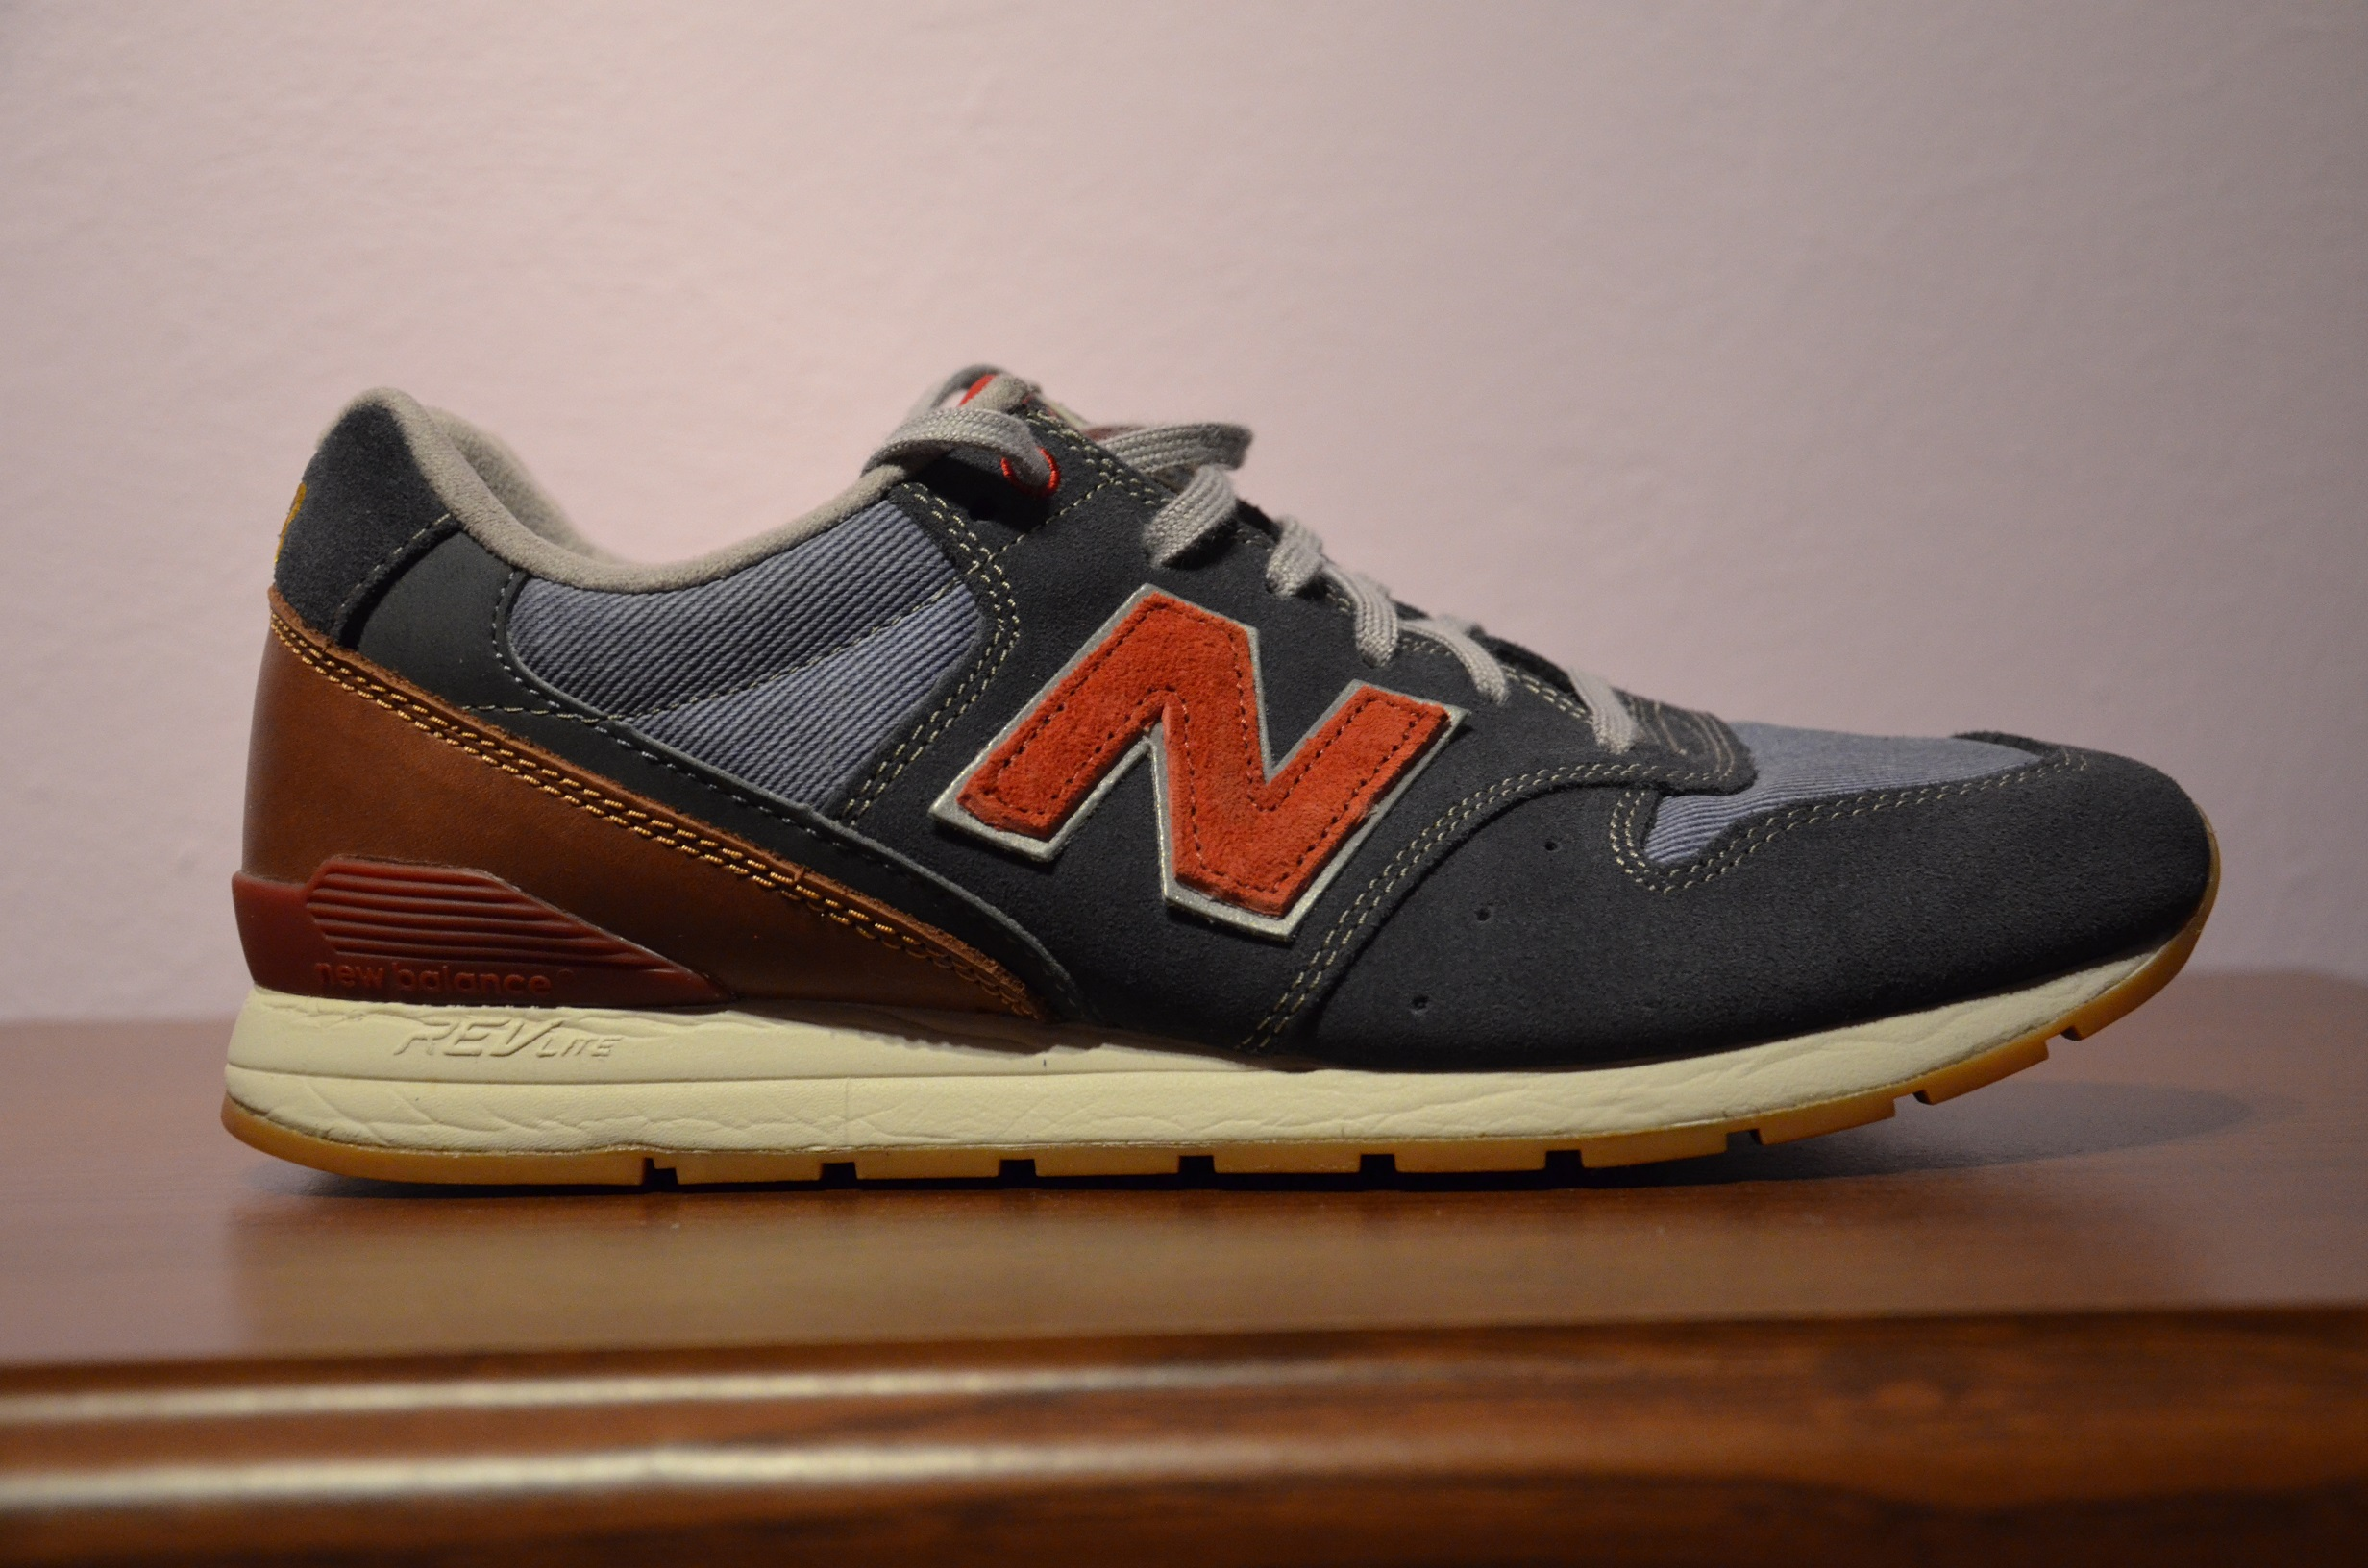 the latest 253b3 20db2 NOWE - New Balance MRL996NF, wkł. 27,5 cm, REVLite ...